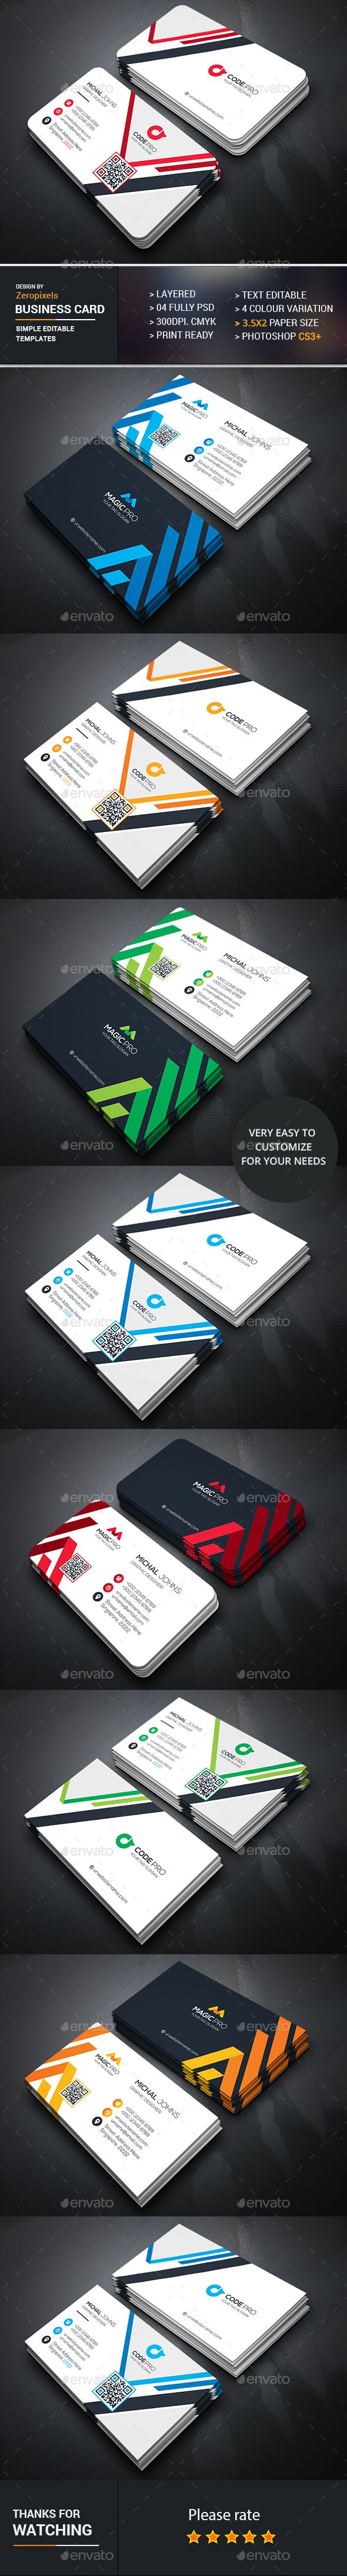 Pin by ferdous rahman on business card pinterest business cards pin by ferdous rahman on business card pinterest business cards card templates and business reheart Images